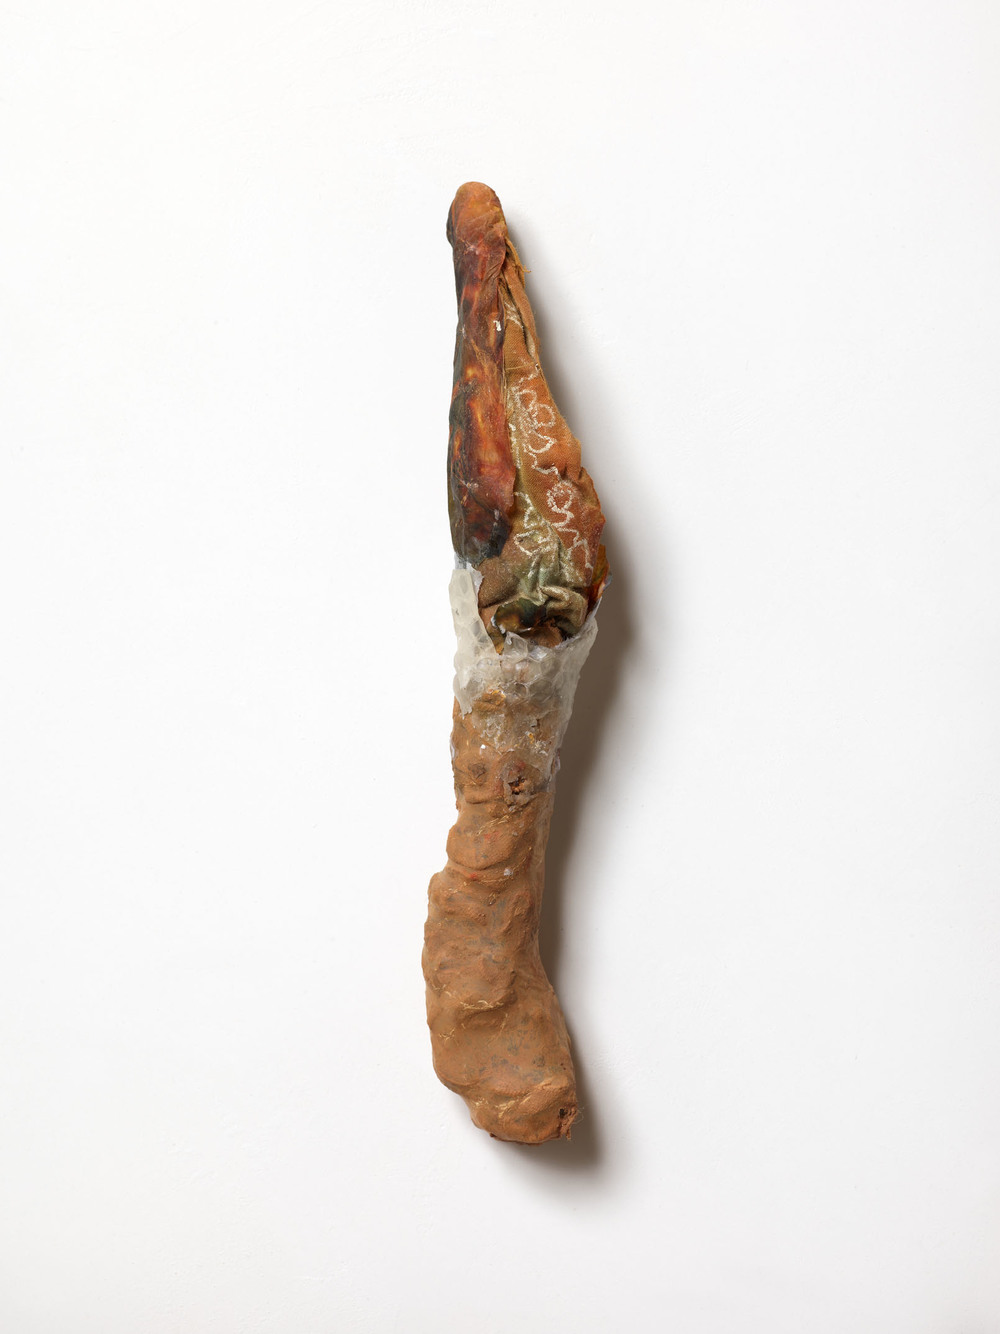 Nicola Ginzel  OBJECT  installations entrails, clothing remnants, frottage remnant, wax